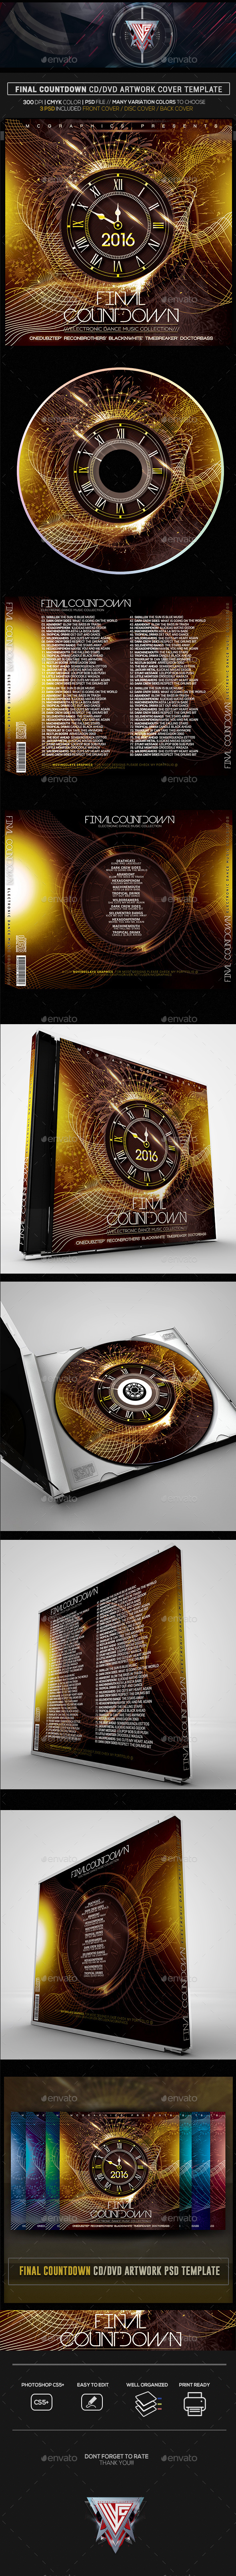 Final Countdown Music Collection CD/DVD Template - CD & DVD Artwork Print Templates